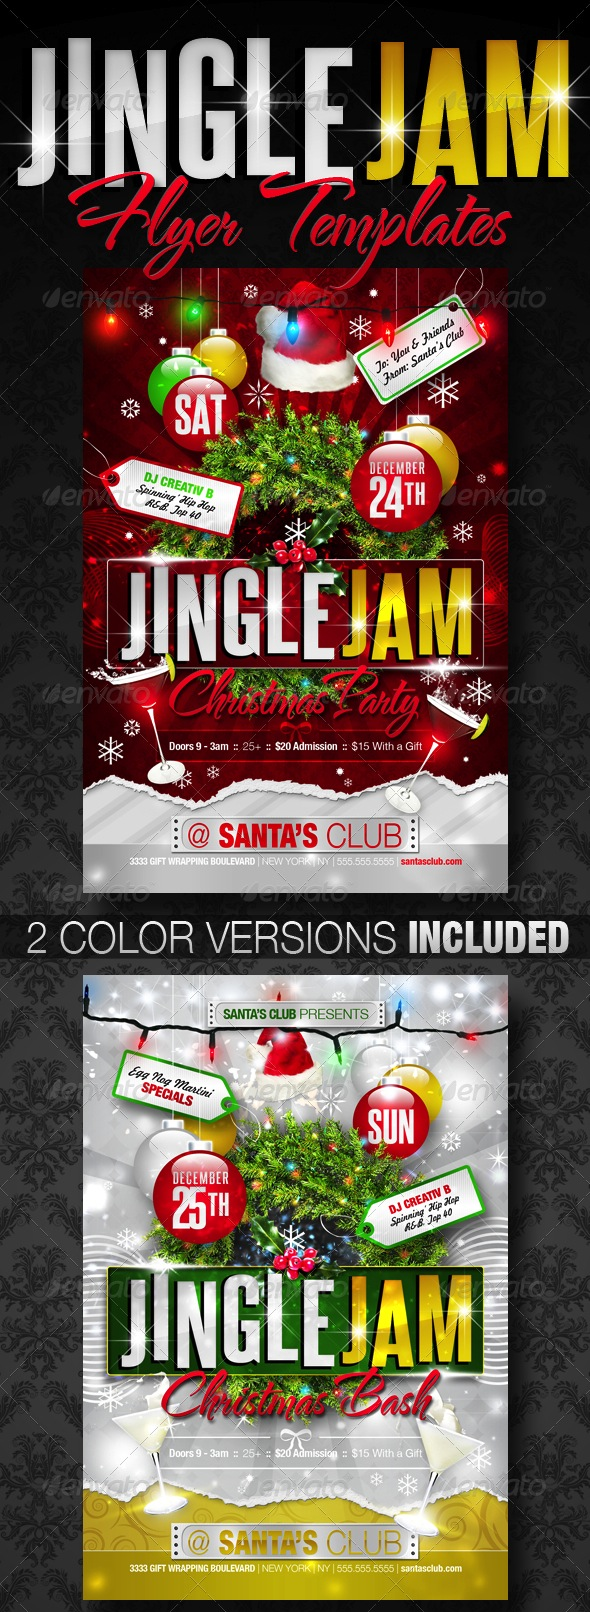 festive christmas and new years eve holiday flyers best designers jingle jam christmas party flyer templates